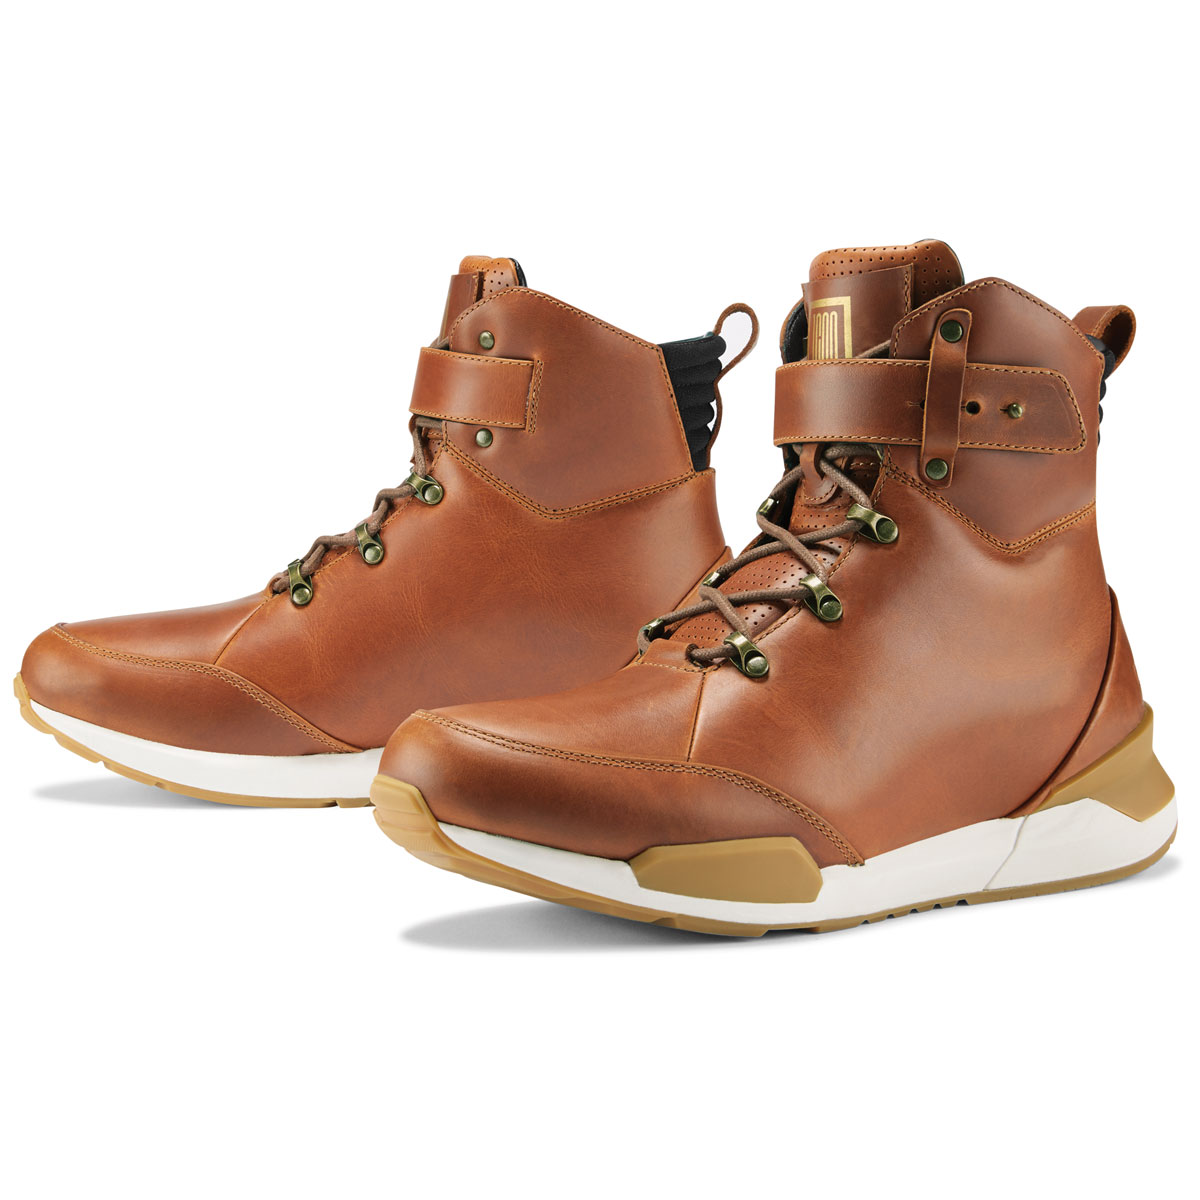 ICON Men's Varial Brown Leather Boots